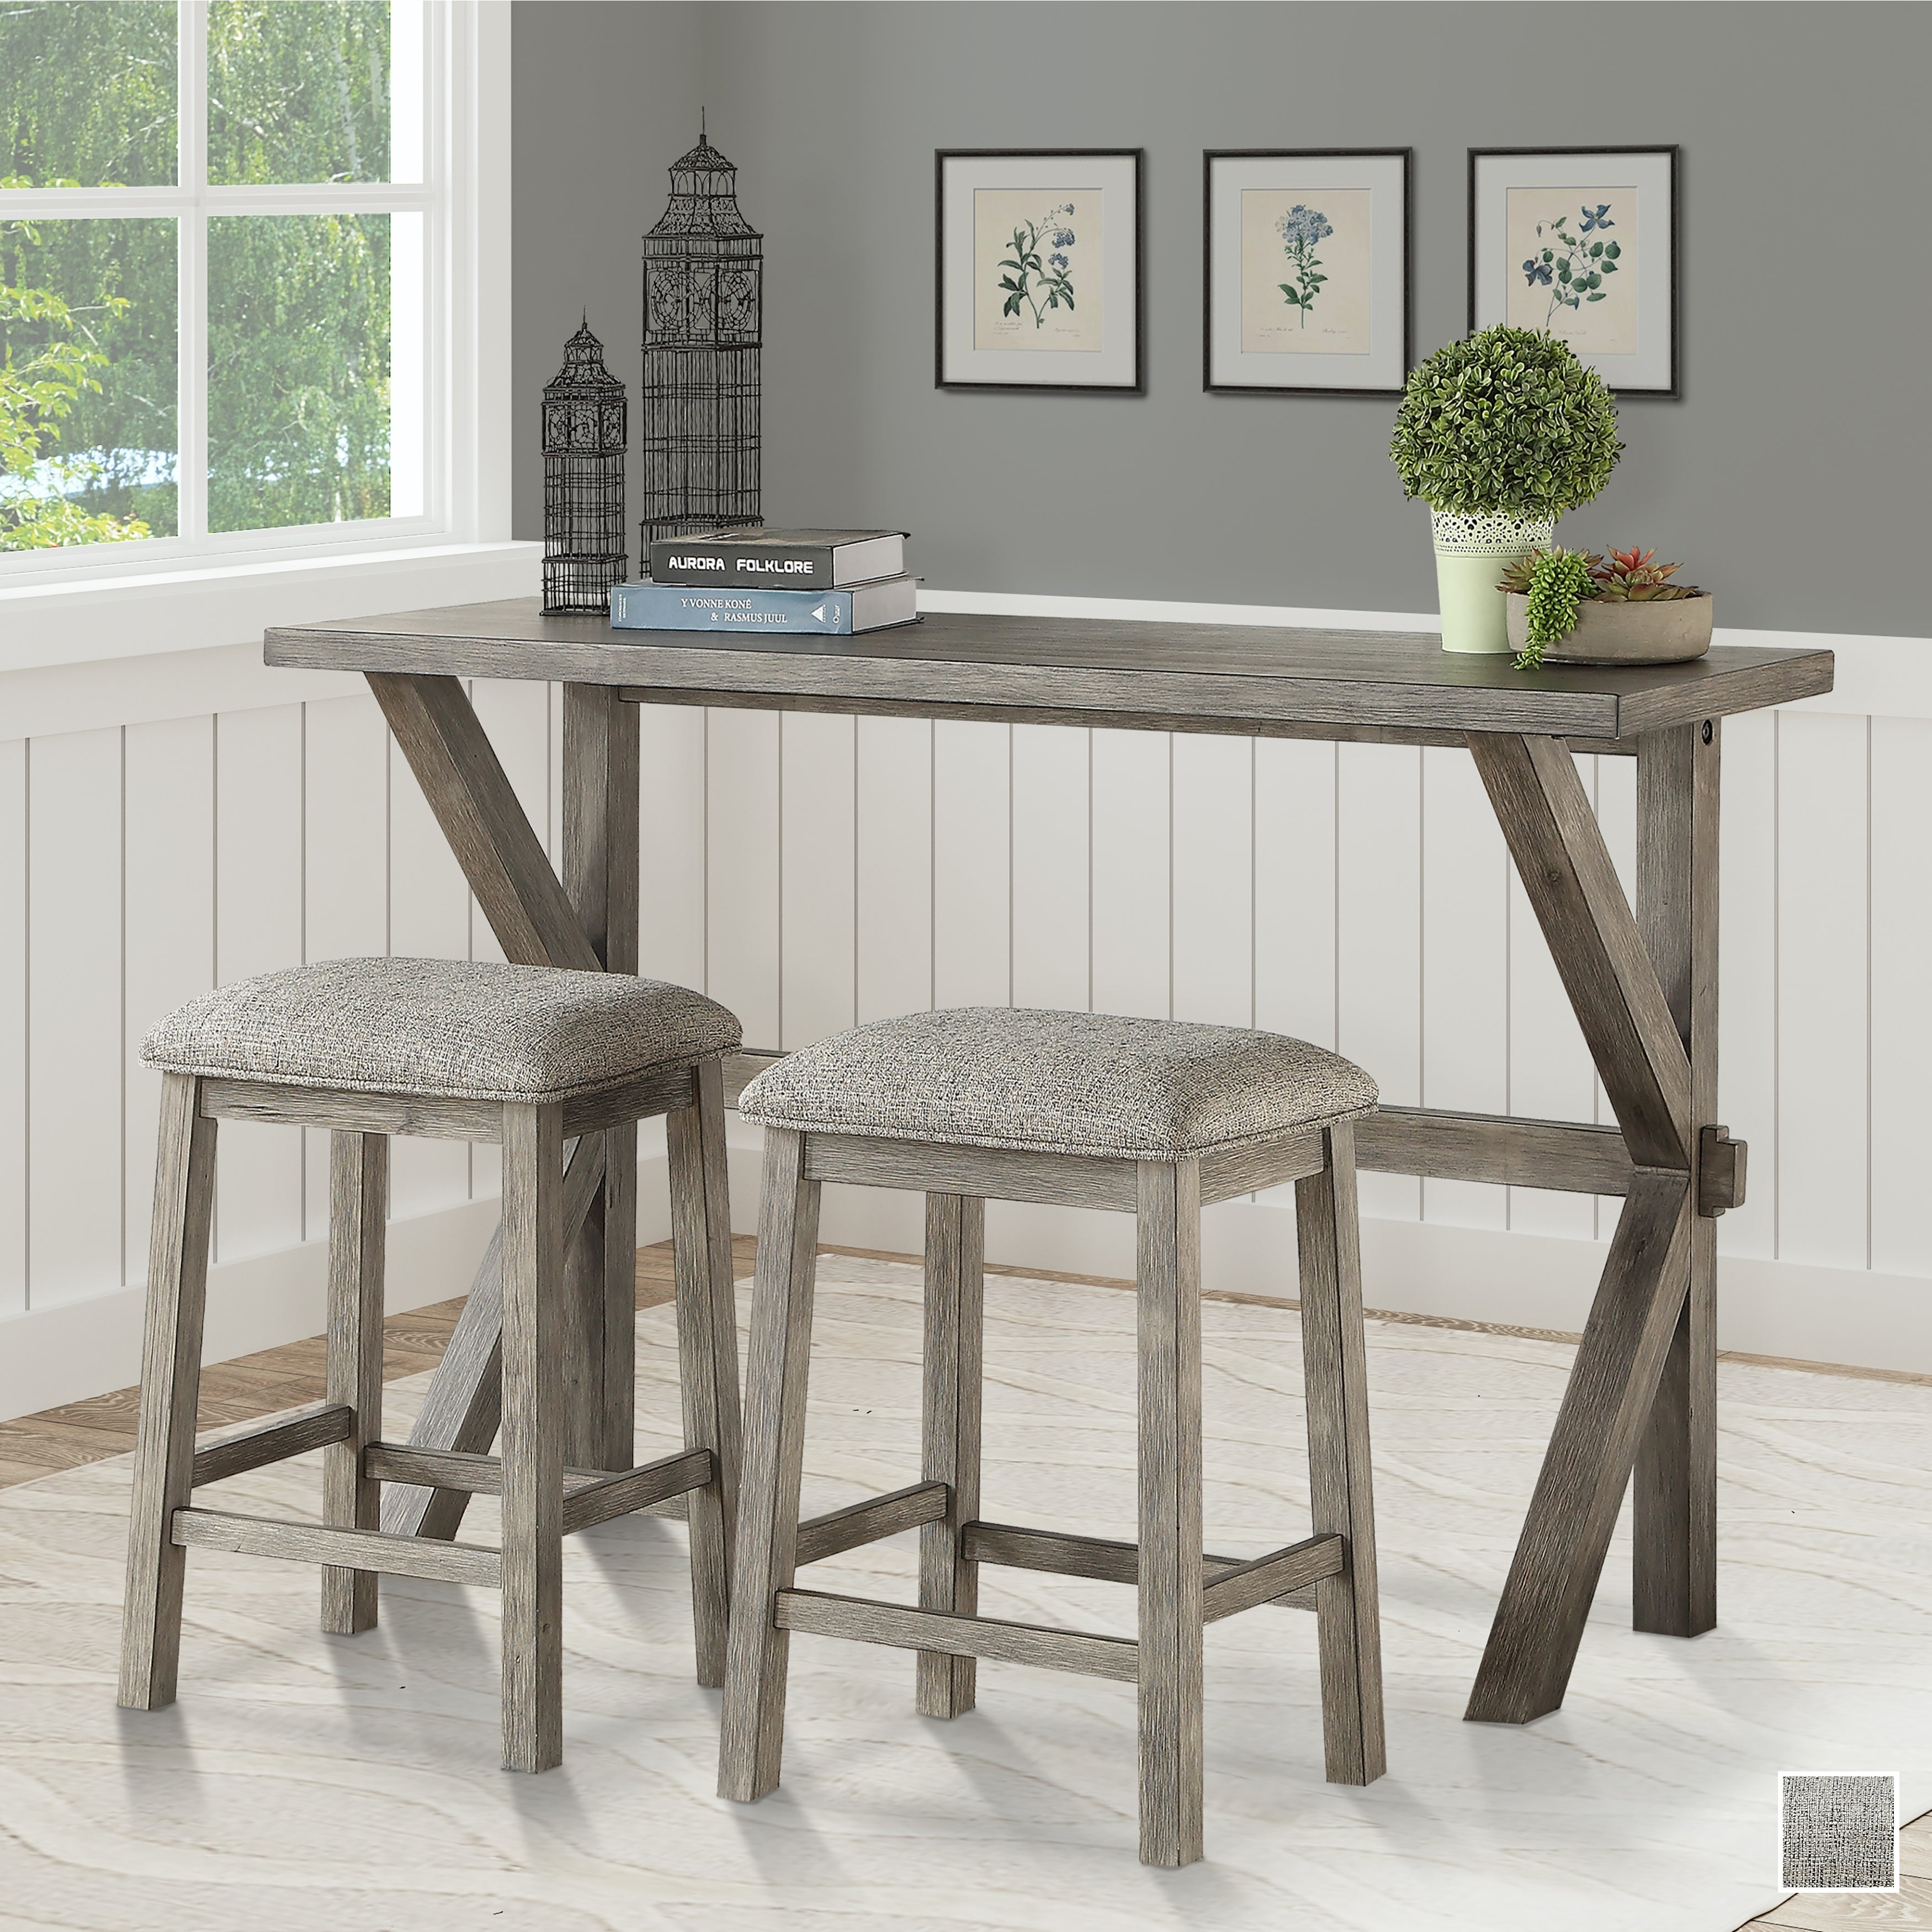 Summerdale 3 Piece Counter Height Dining Set On Sale Overstock 31845188